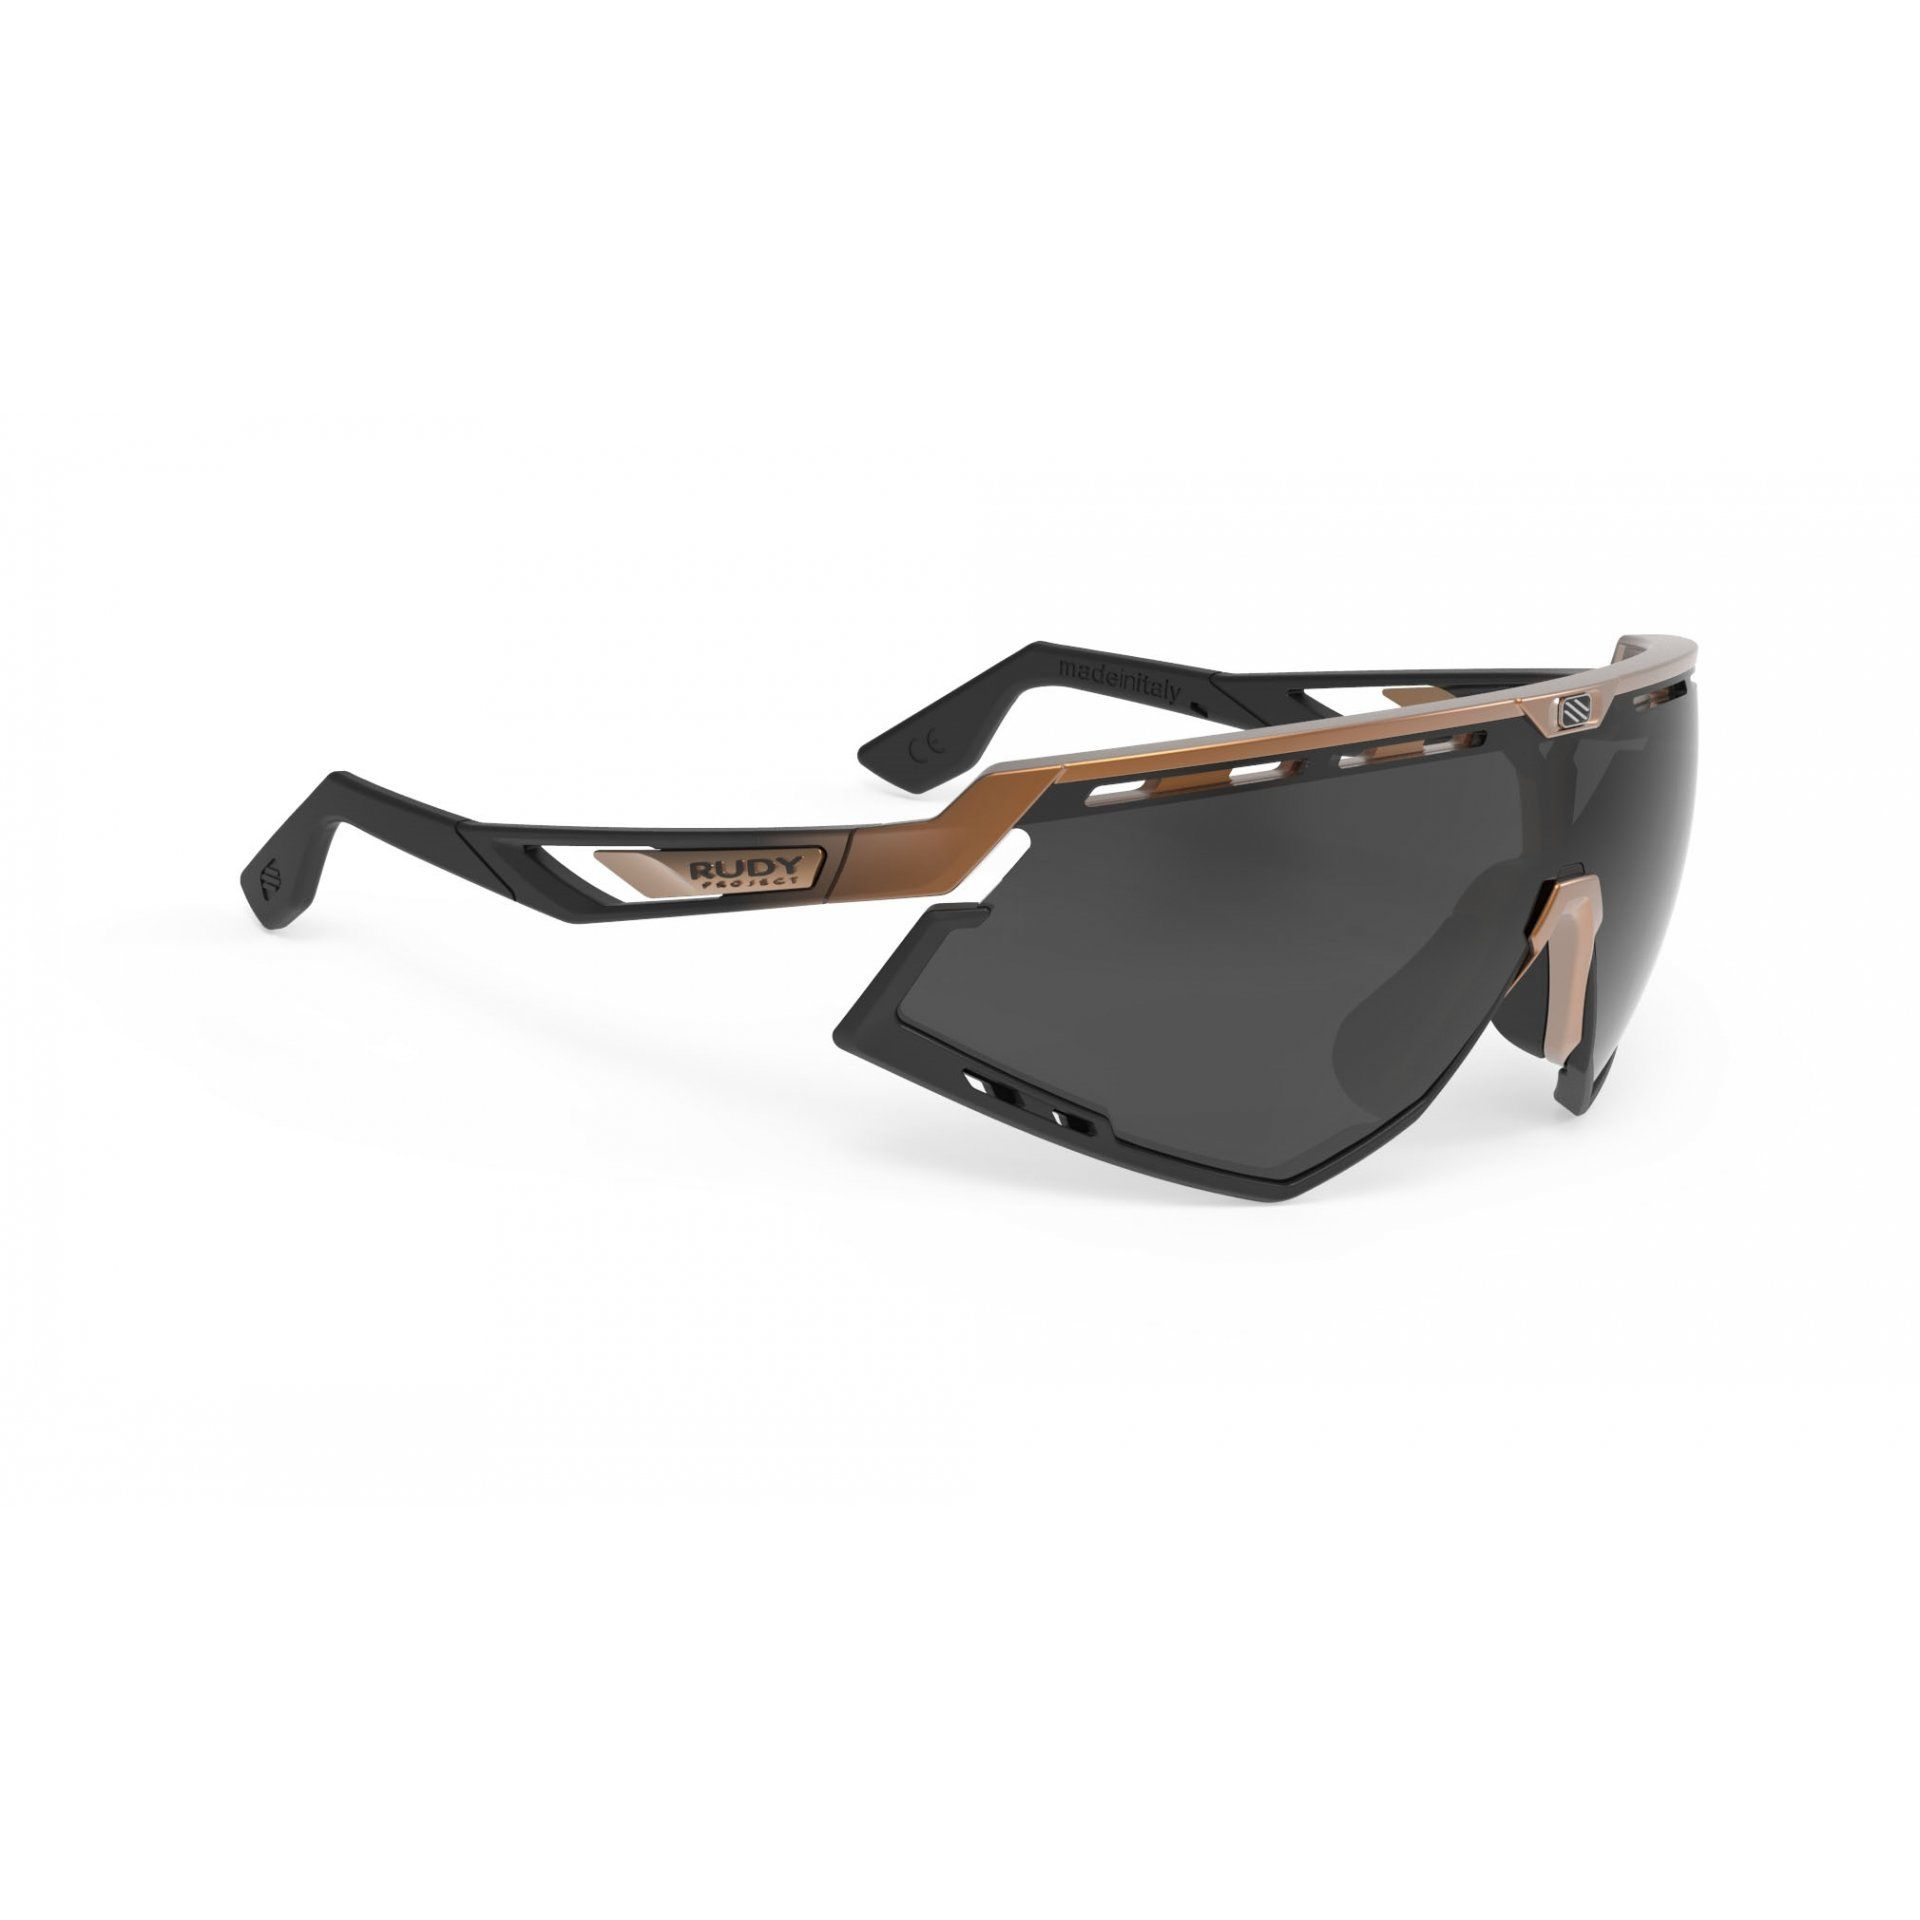 OKULARY RUDY PROJECT DEFENDER BRONZE MATTE|BLACK+SMOKE BLACK 1